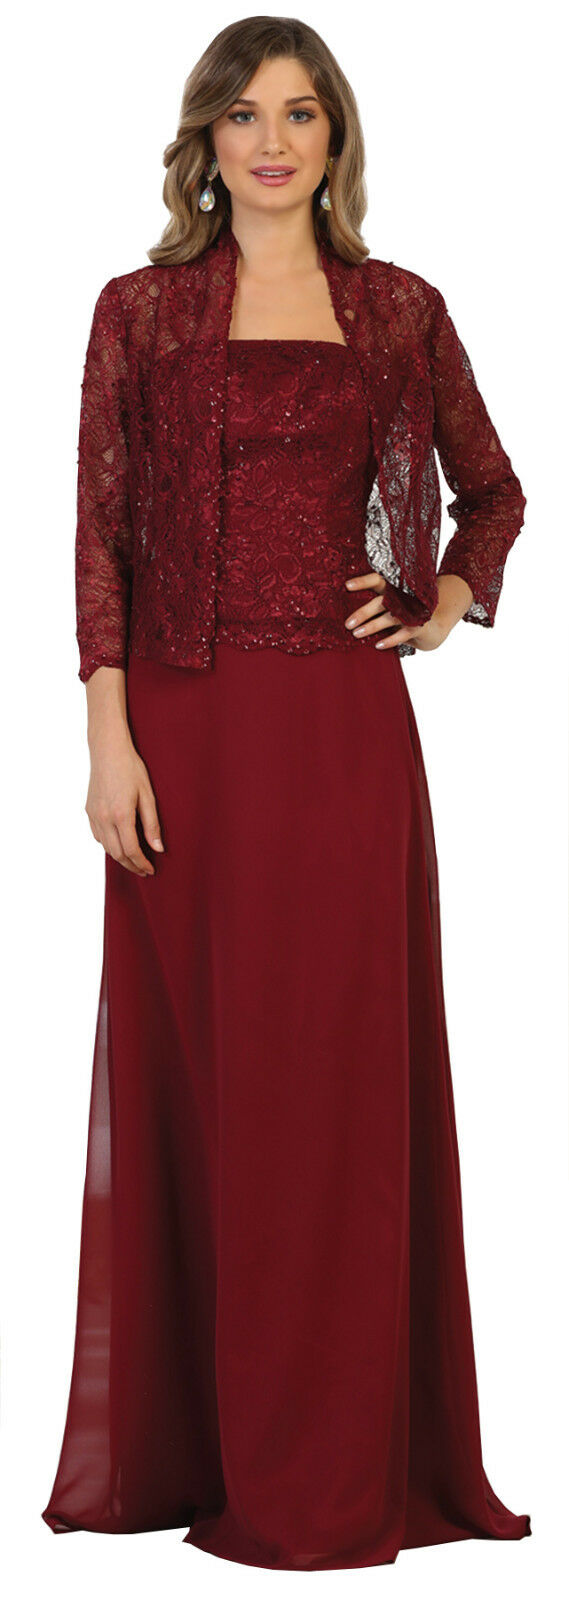 NEW MOTHER of THE BRIDE GROOM PLUS SIZE LONG GOWN DRESSES FORMAL EVENING CHURCH